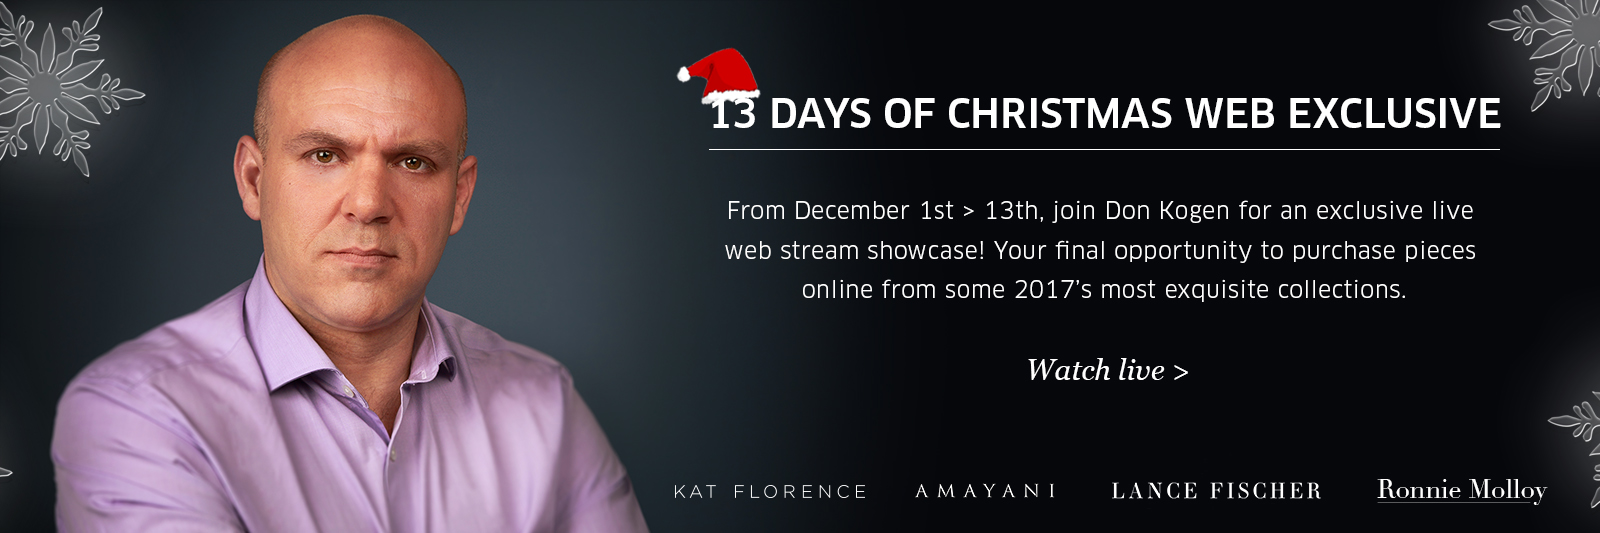 13 days of XMAS web exclusive at Rocks & Co.